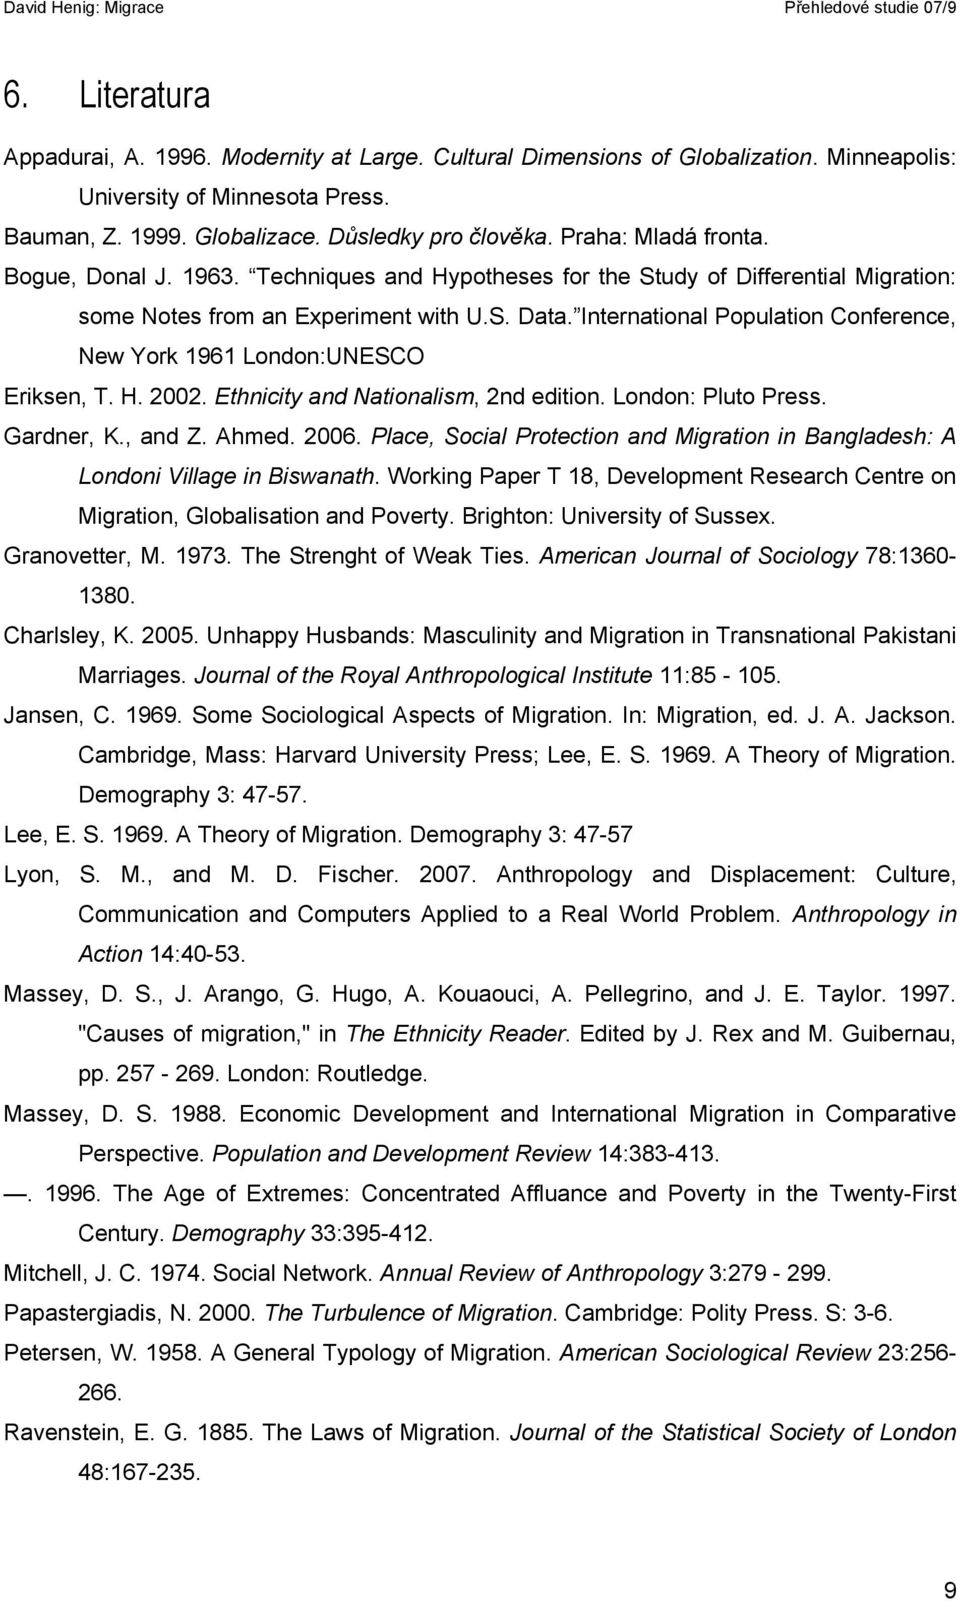 International Population Conference, New York 1961 London:UNESCO Eriksen, T. H. 2002. Ethnicity and Nationalism, 2nd edition. London: Pluto Press. Gardner, K., and Z. Ahmed. 2006.